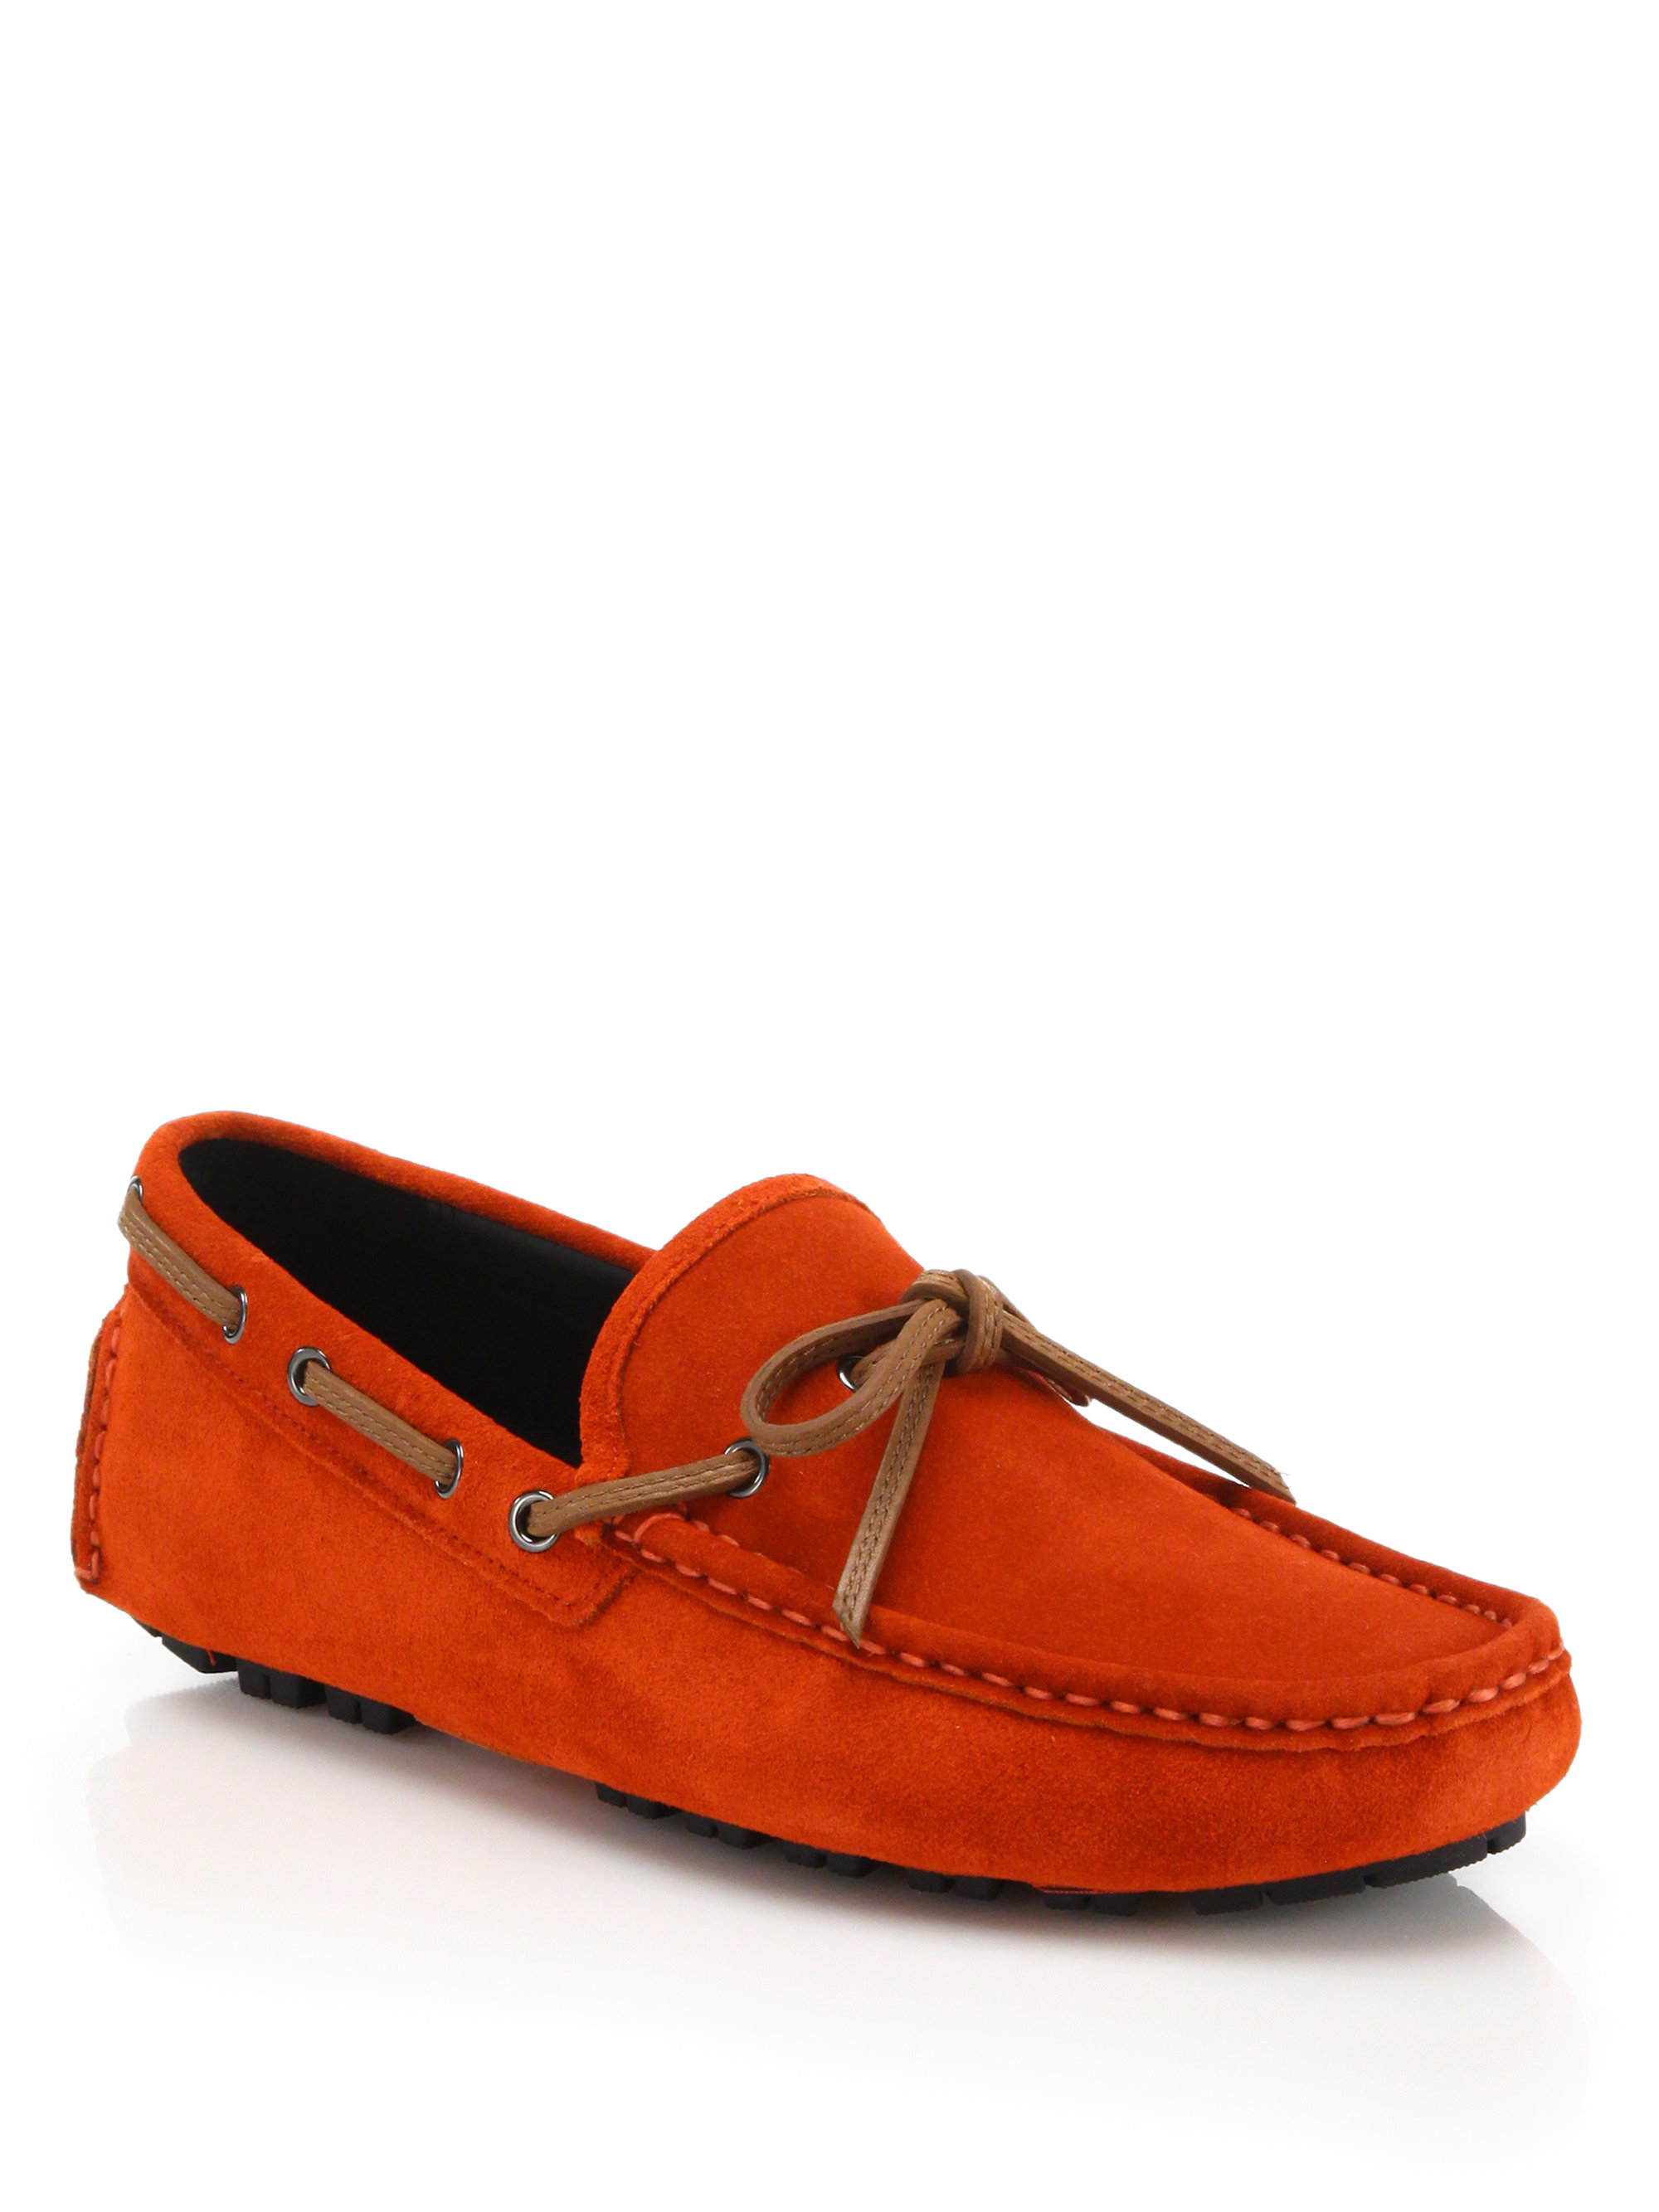 Coach Crosby Suede Driving Loafers In Red For Men Lyst